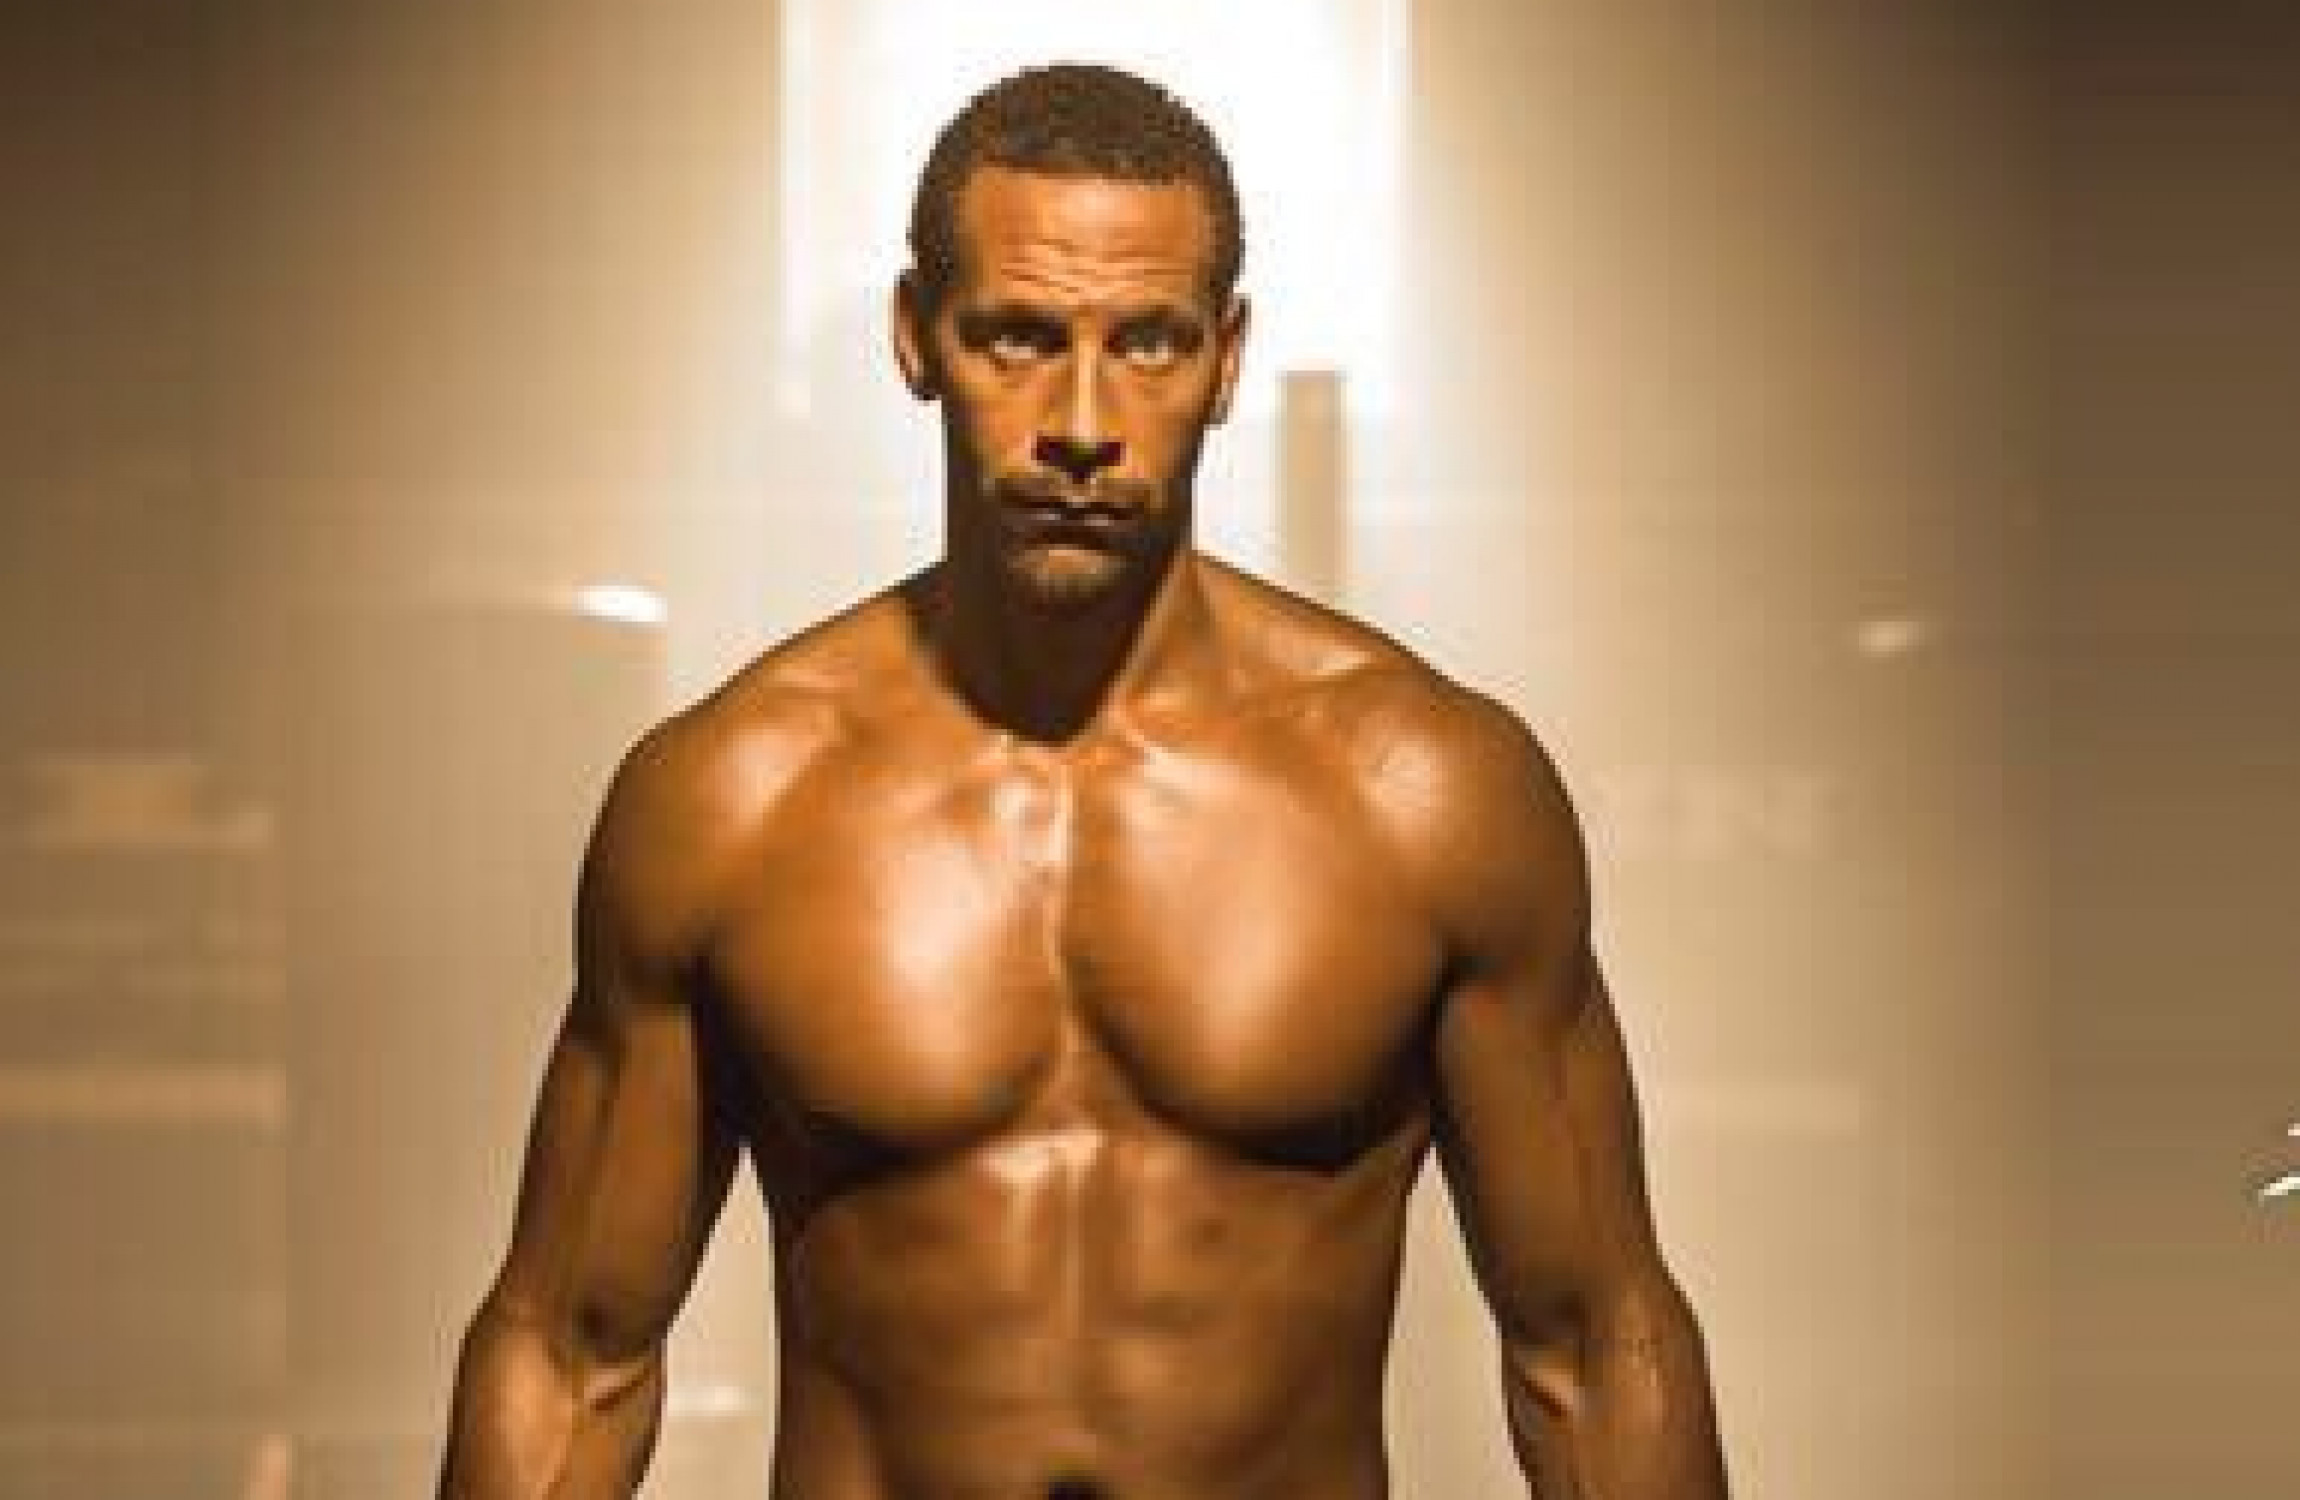 Rio Ferdinand to announce shock move into professional boxing